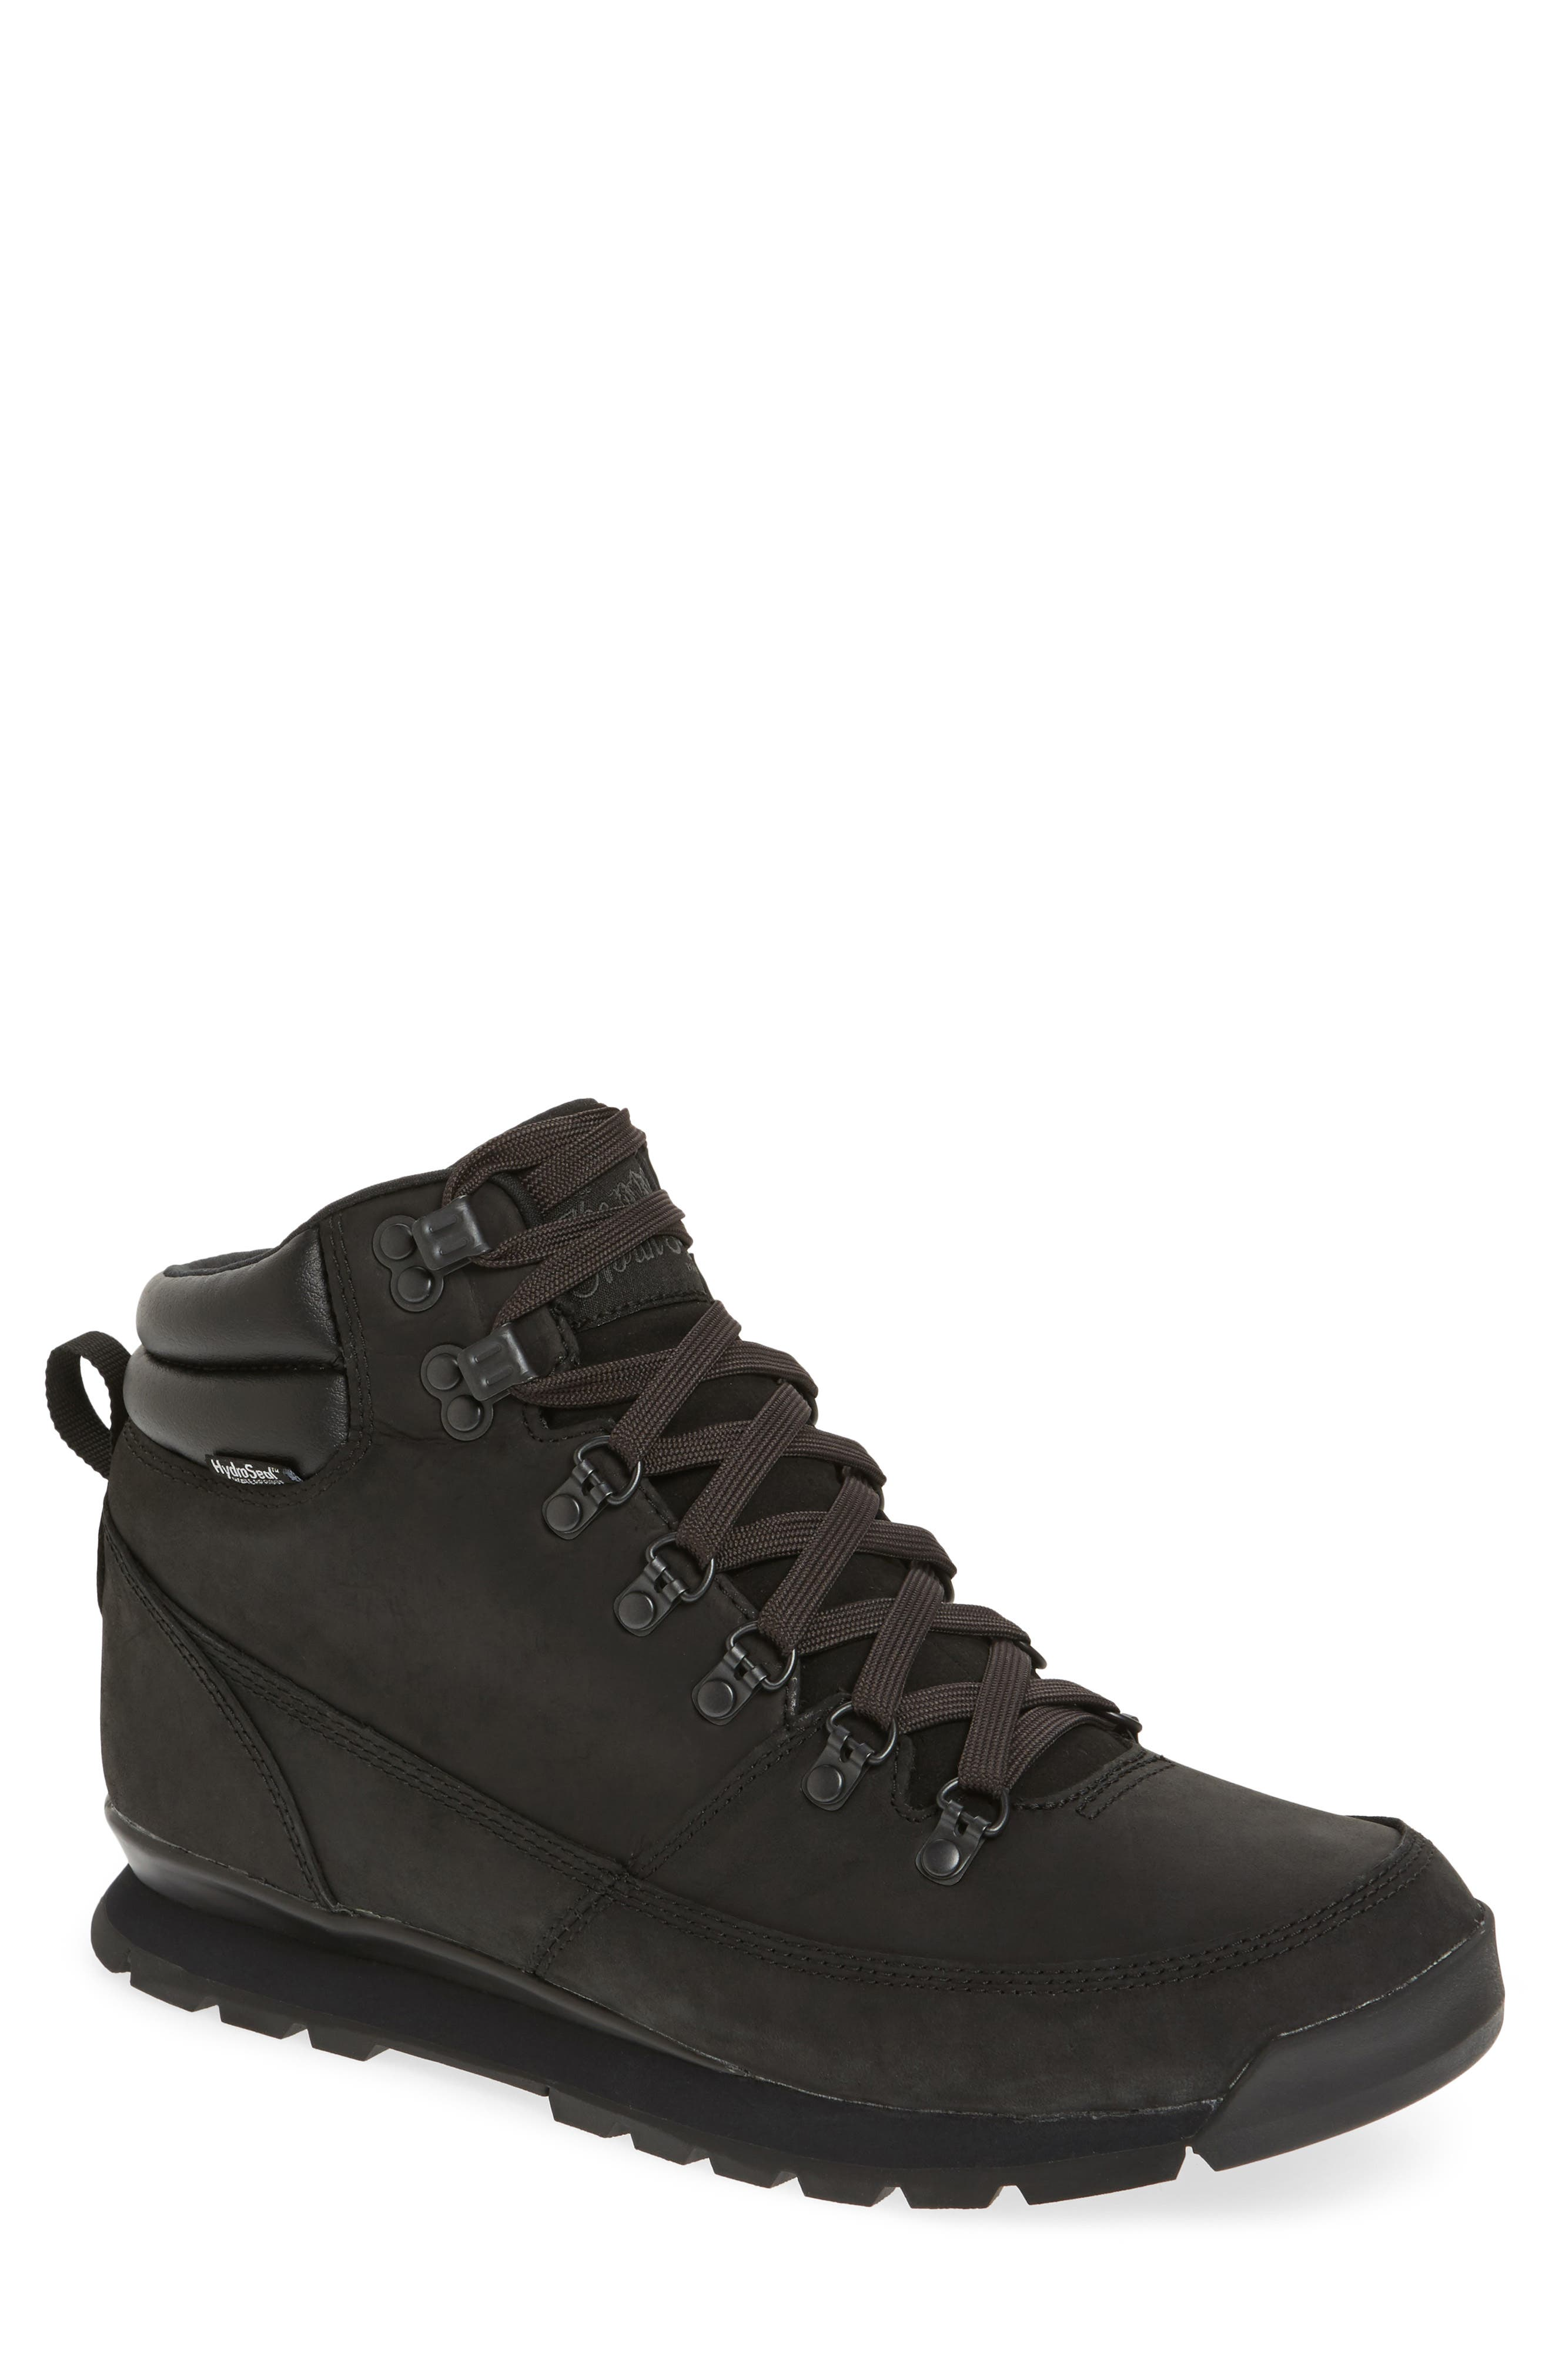 'Back to Berkeley Redux' Waterproof Boot,                             Main thumbnail 1, color,                             Tnf Black/ Tnf Black